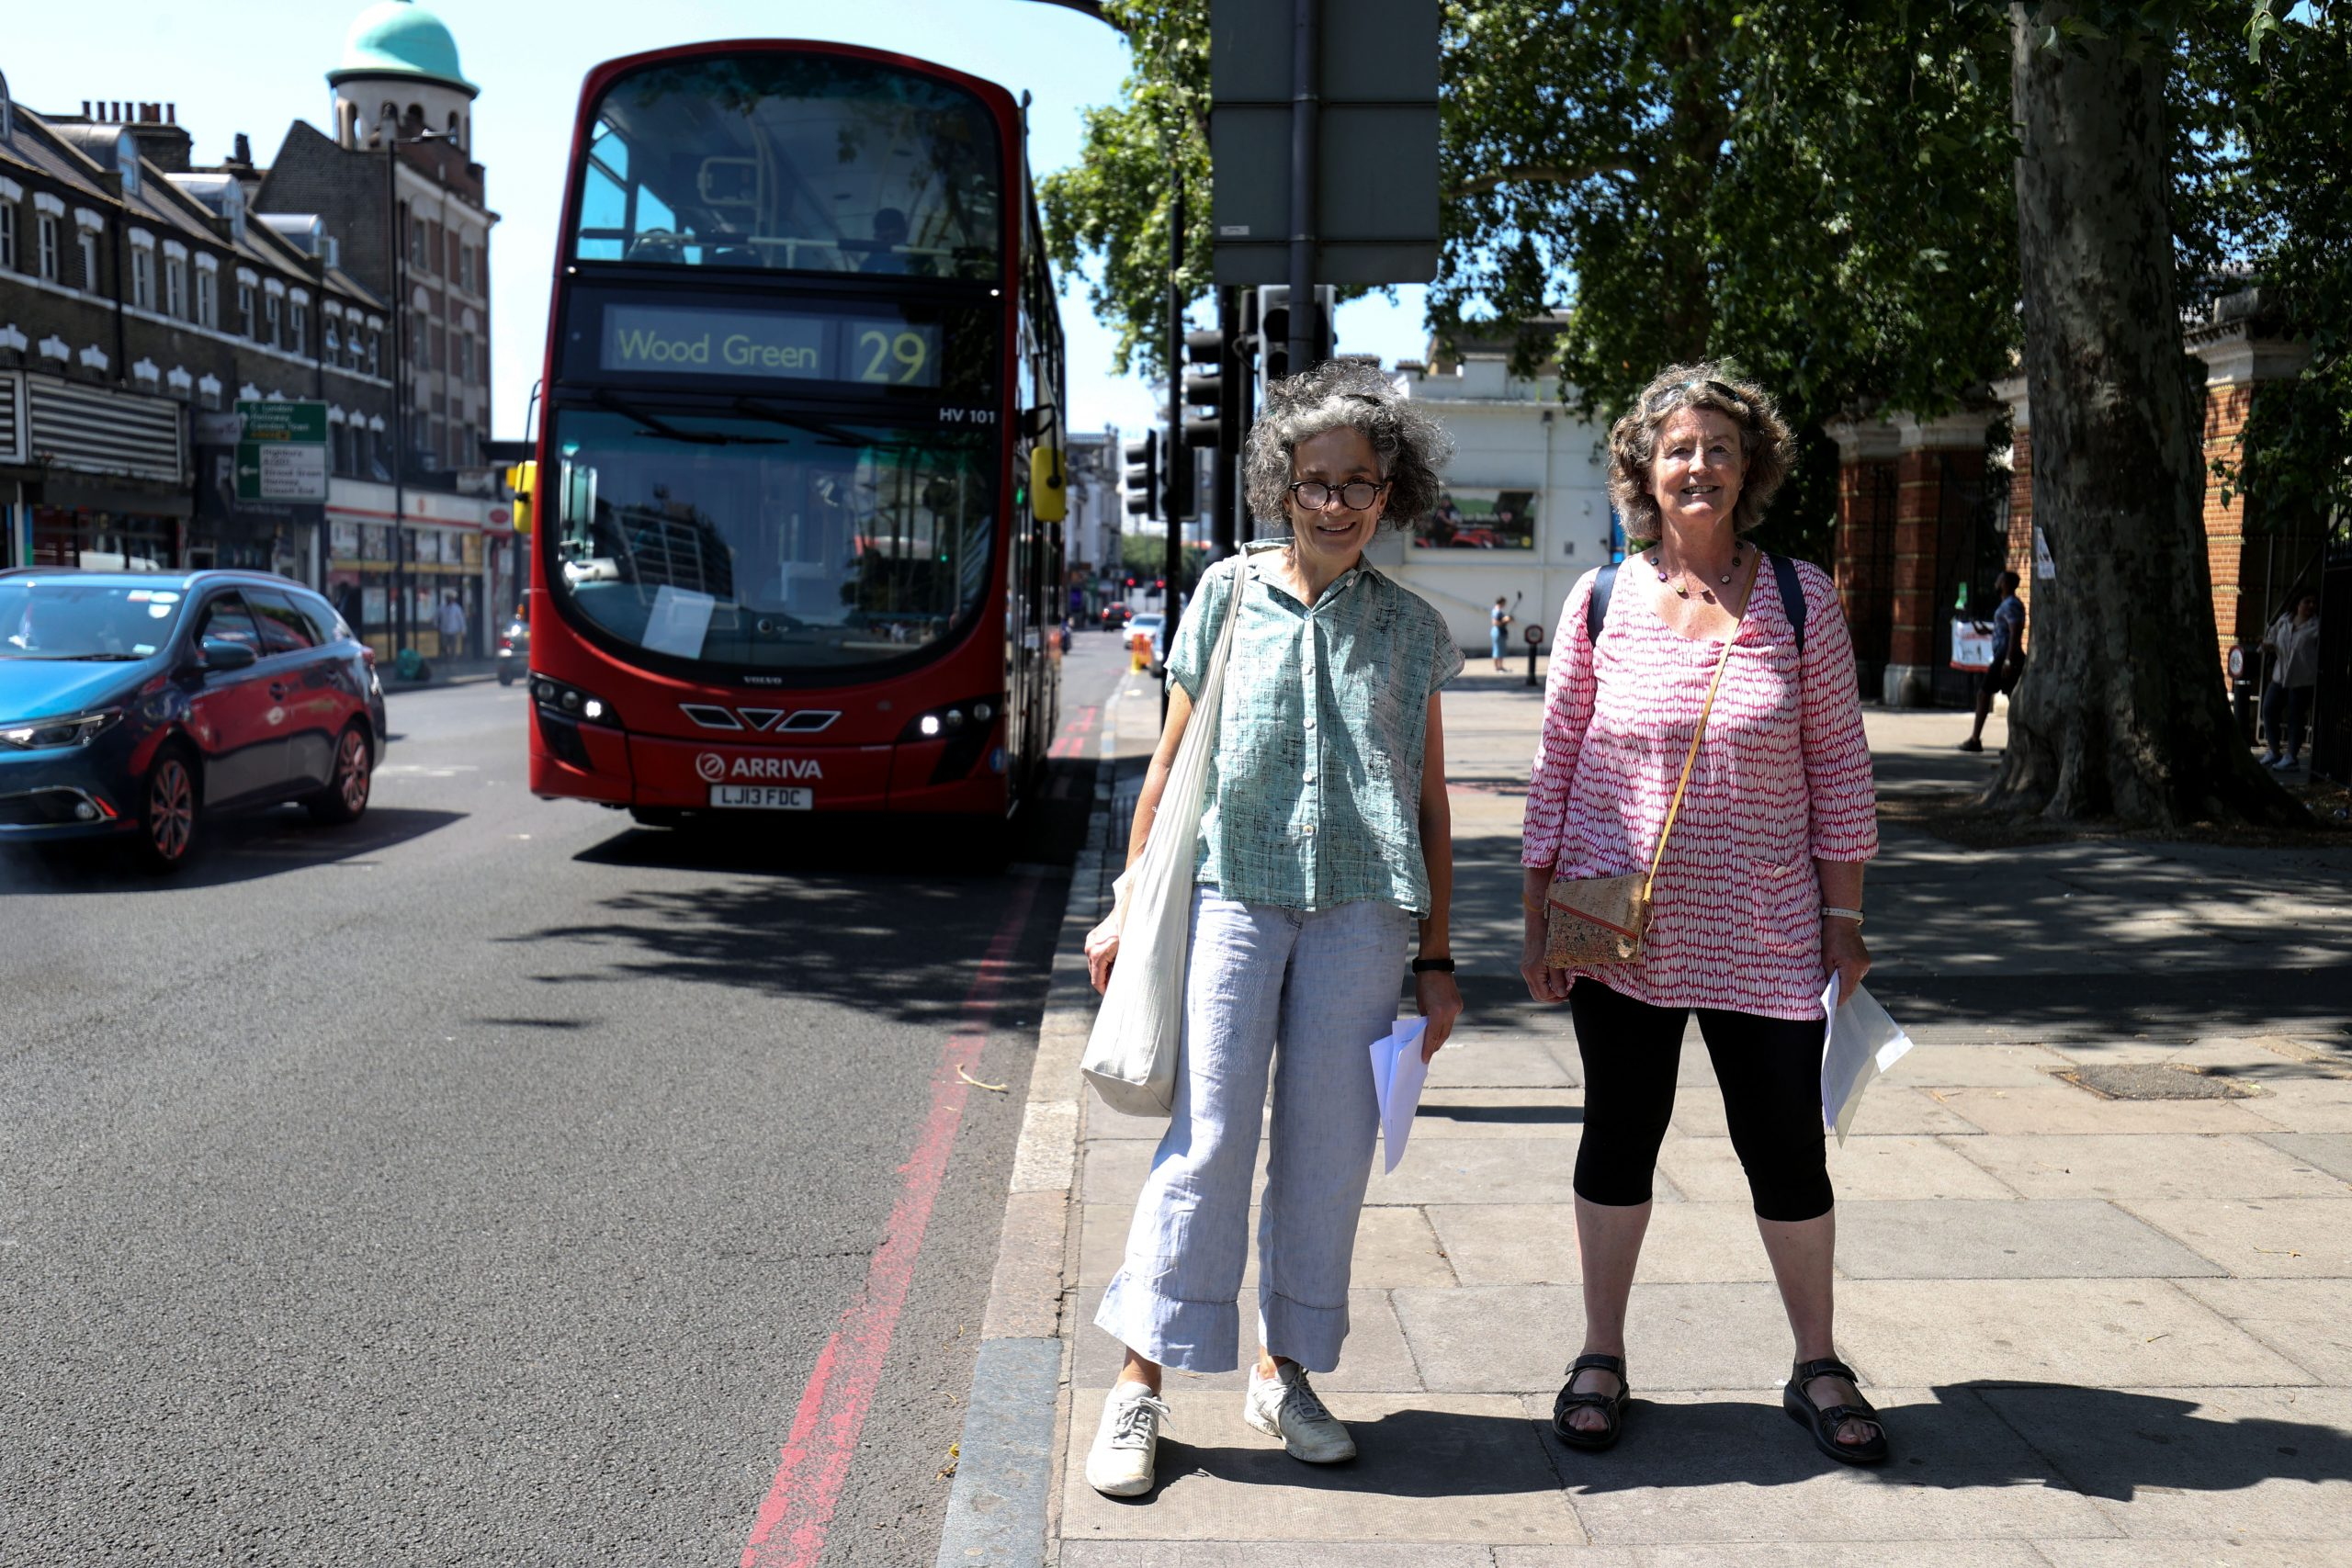 Stop 9 - Oonagh And Susan And The No. 29 Bus